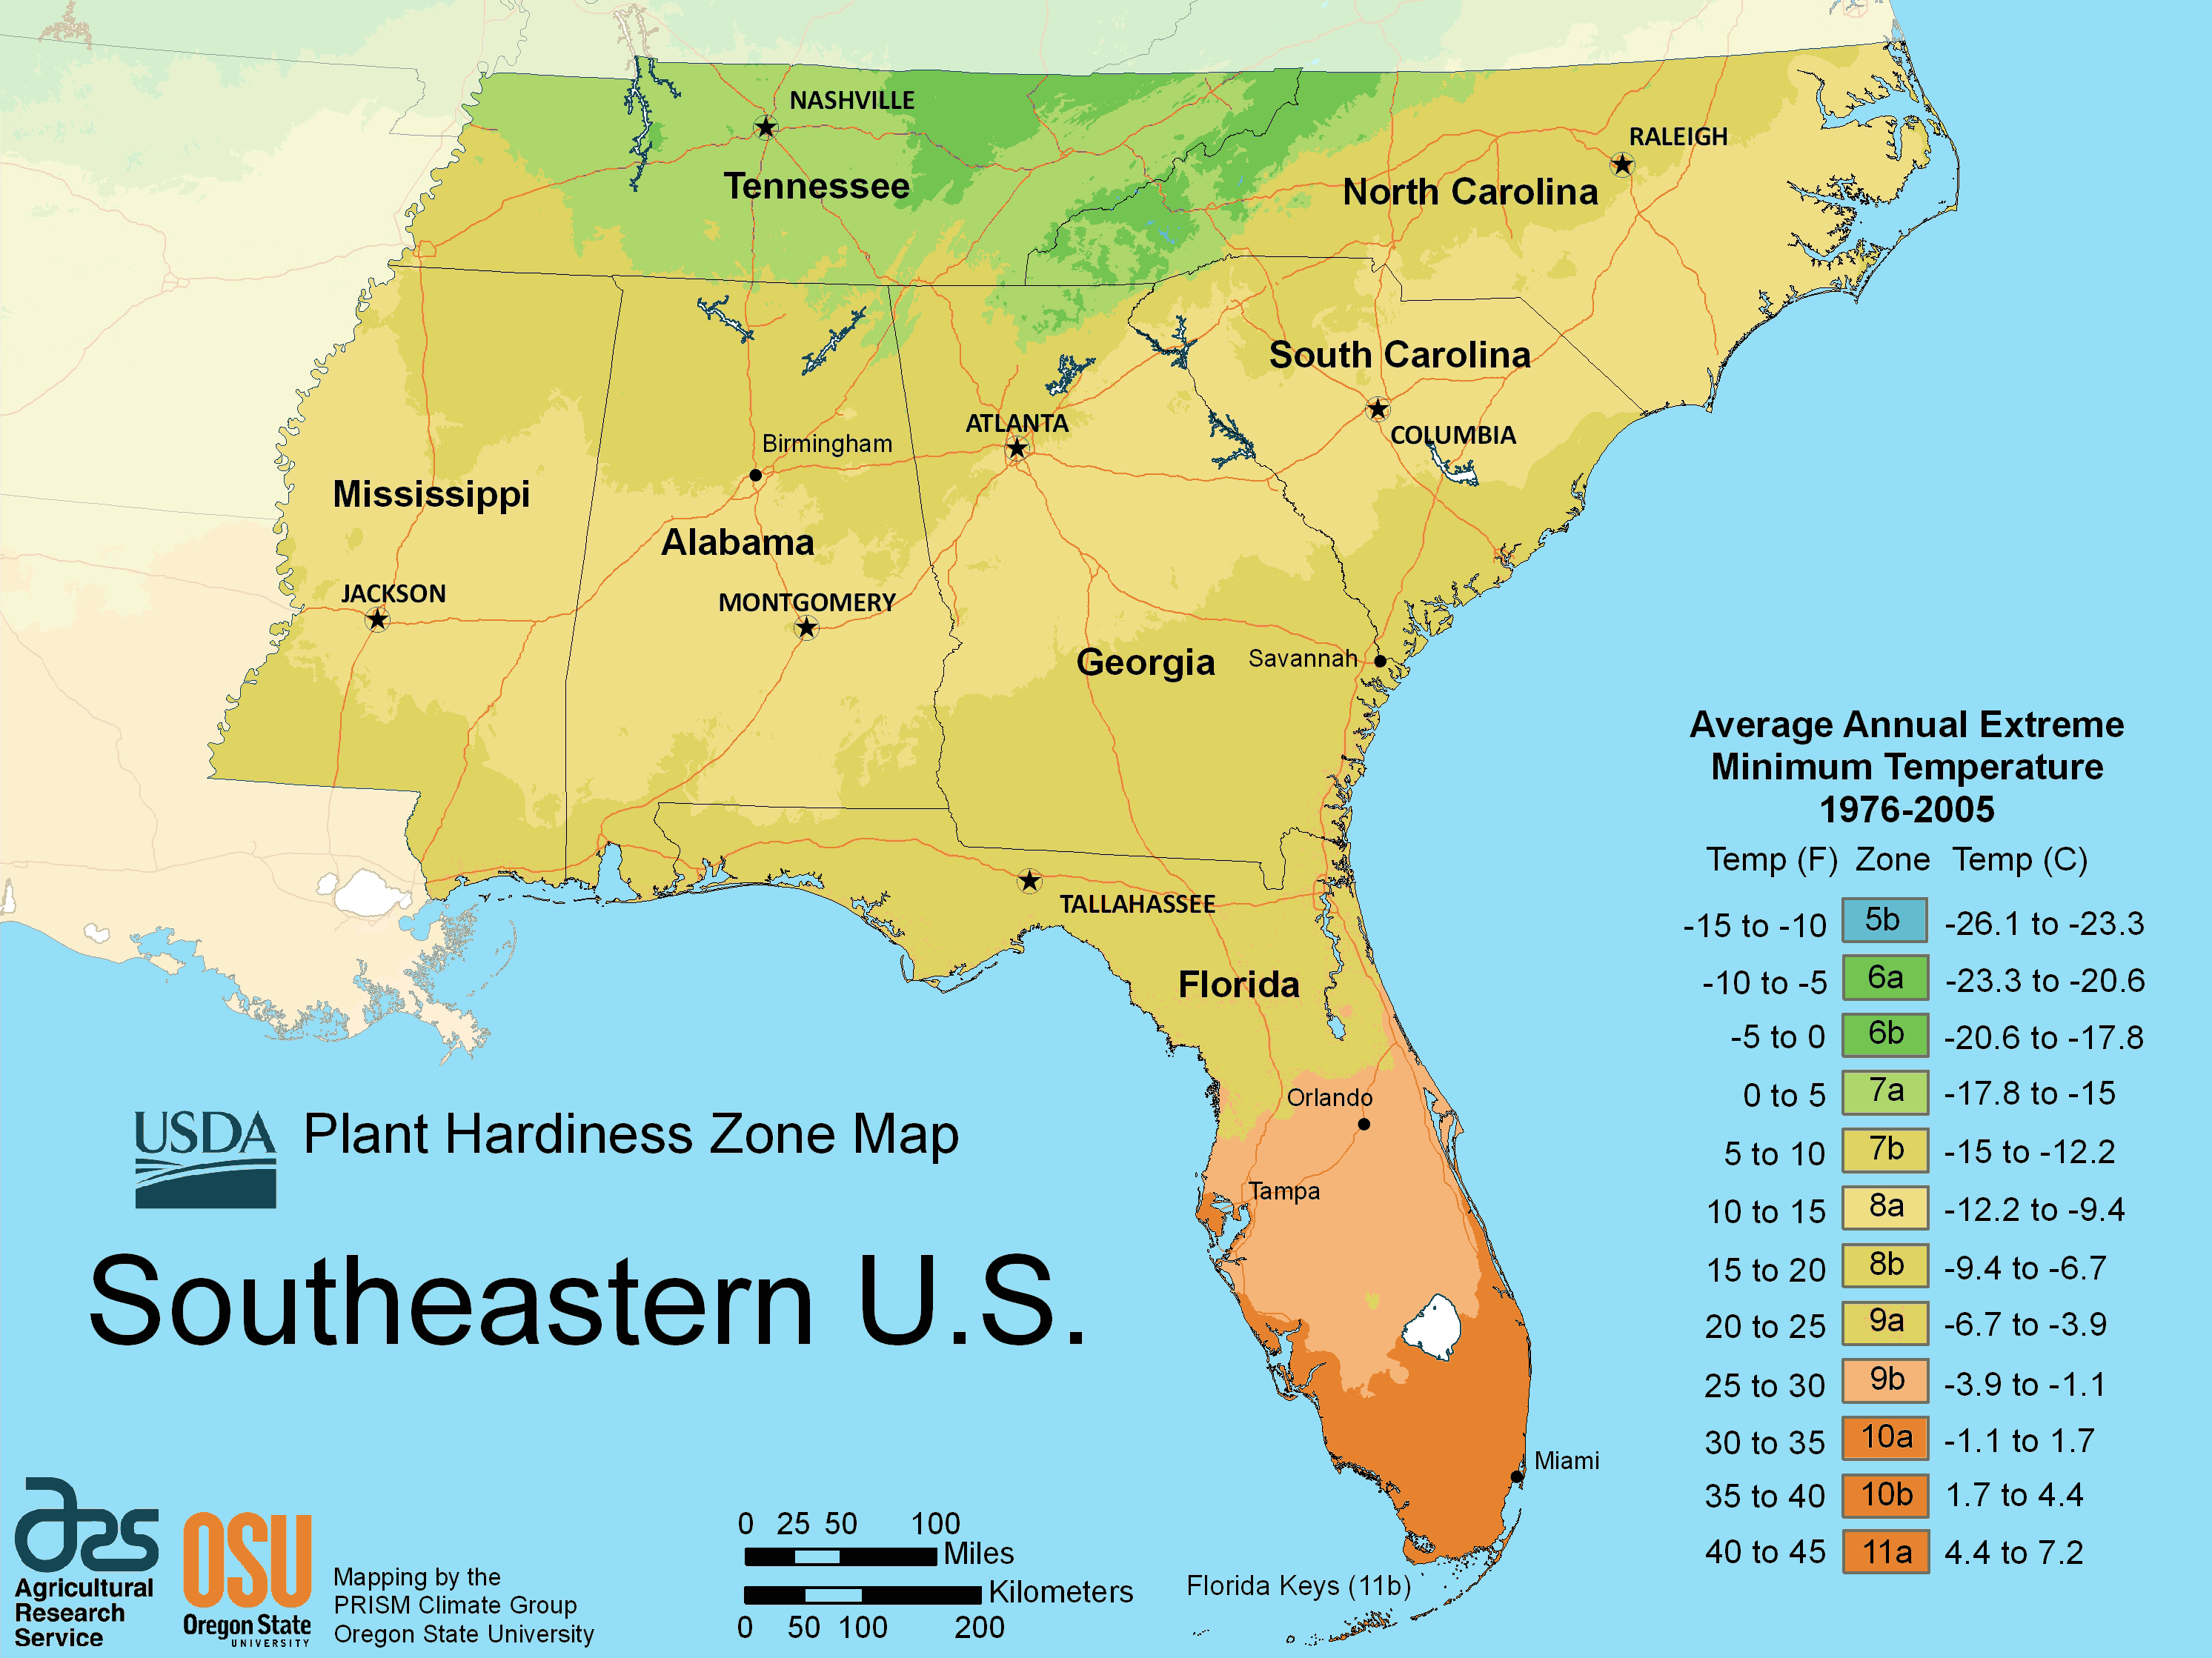 East And Southeast Asia Map Identification Ms Patten Eastern Us - Eastern us airports map